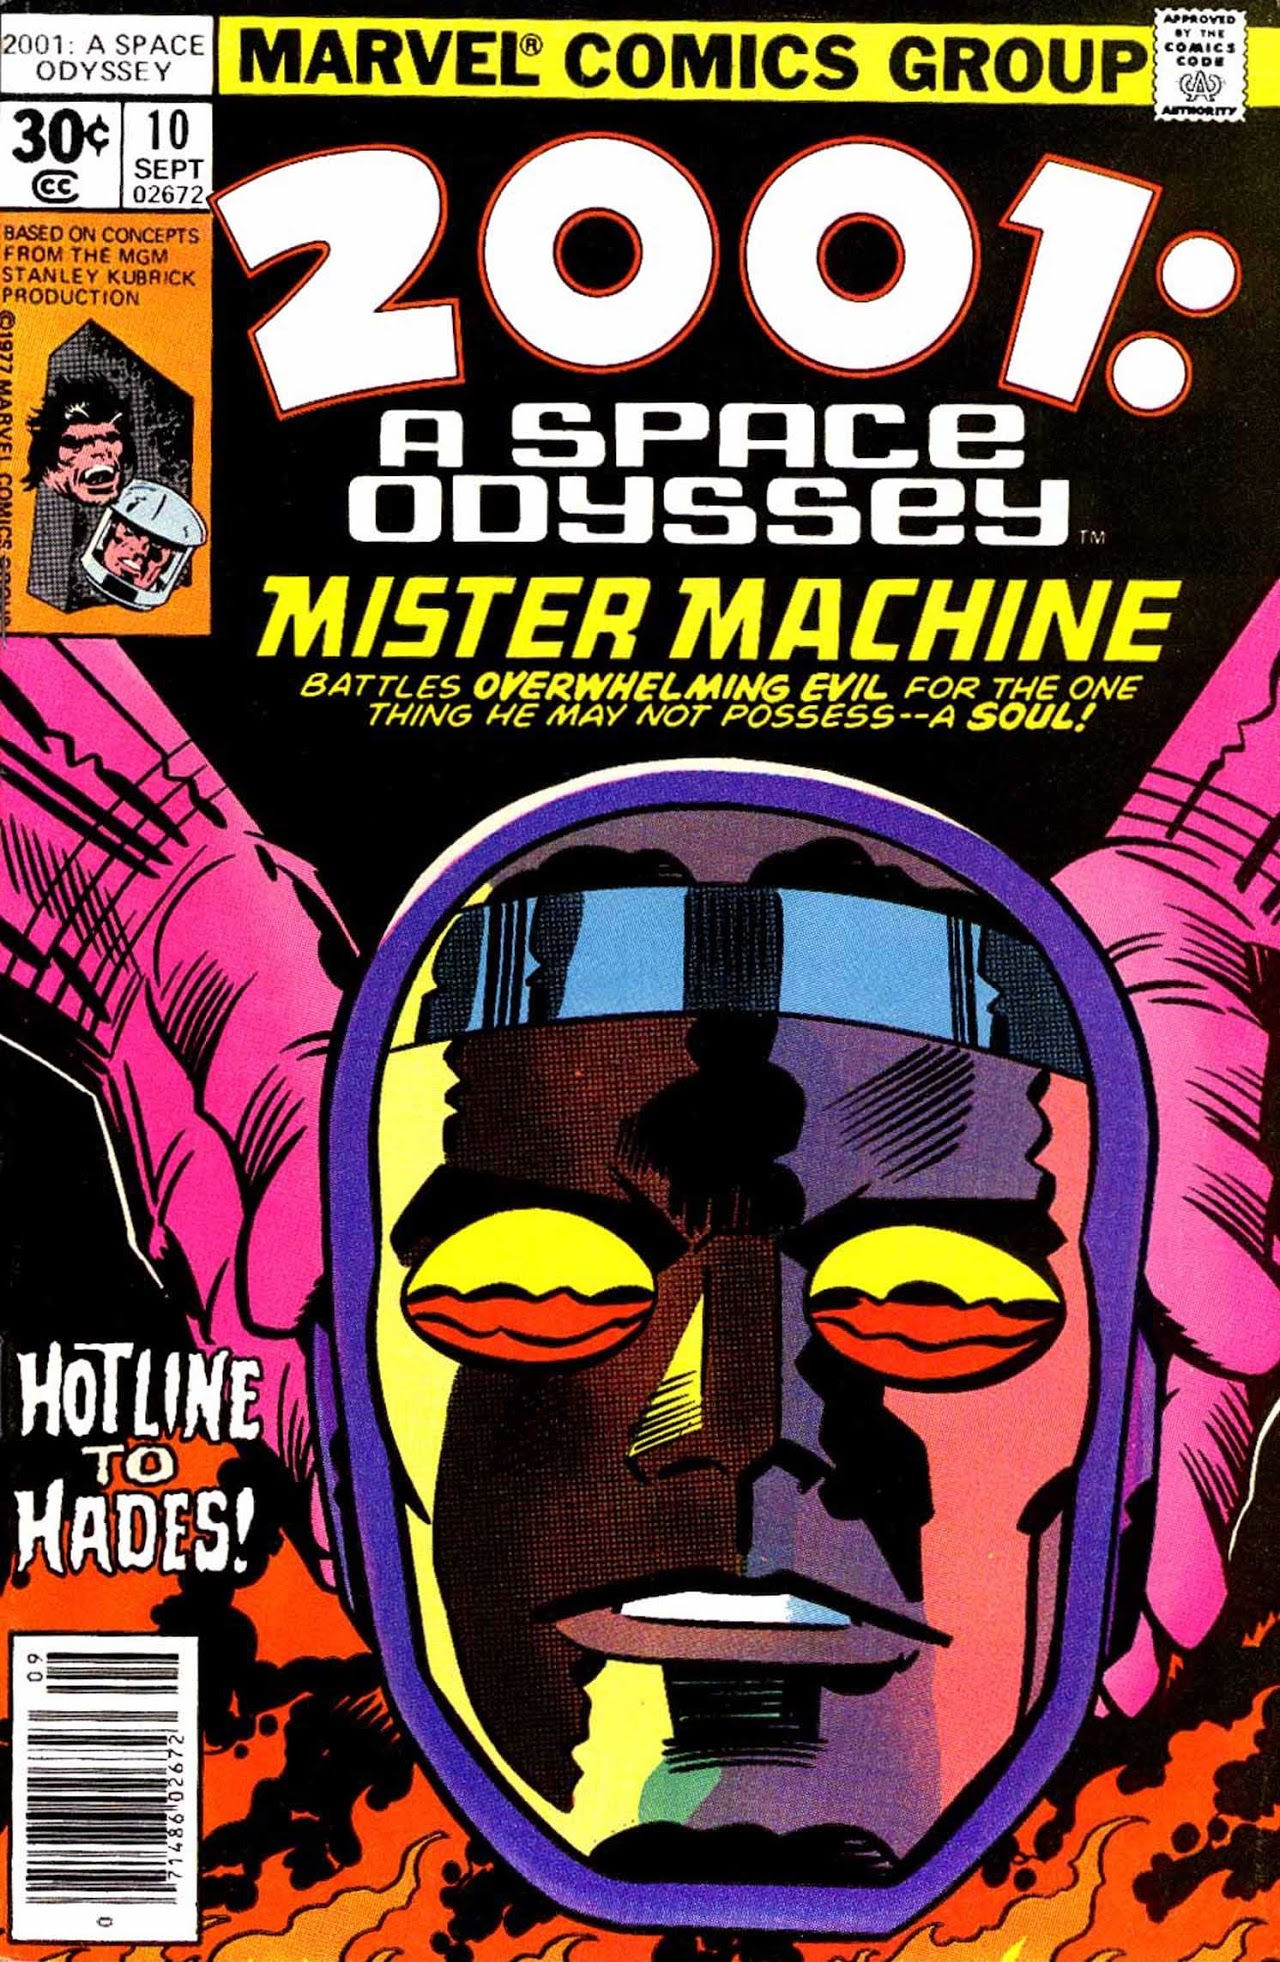 2001: A Space Odyssey (1976) #10, cover penciled by Jack Kirby & inked by Mike Royer.